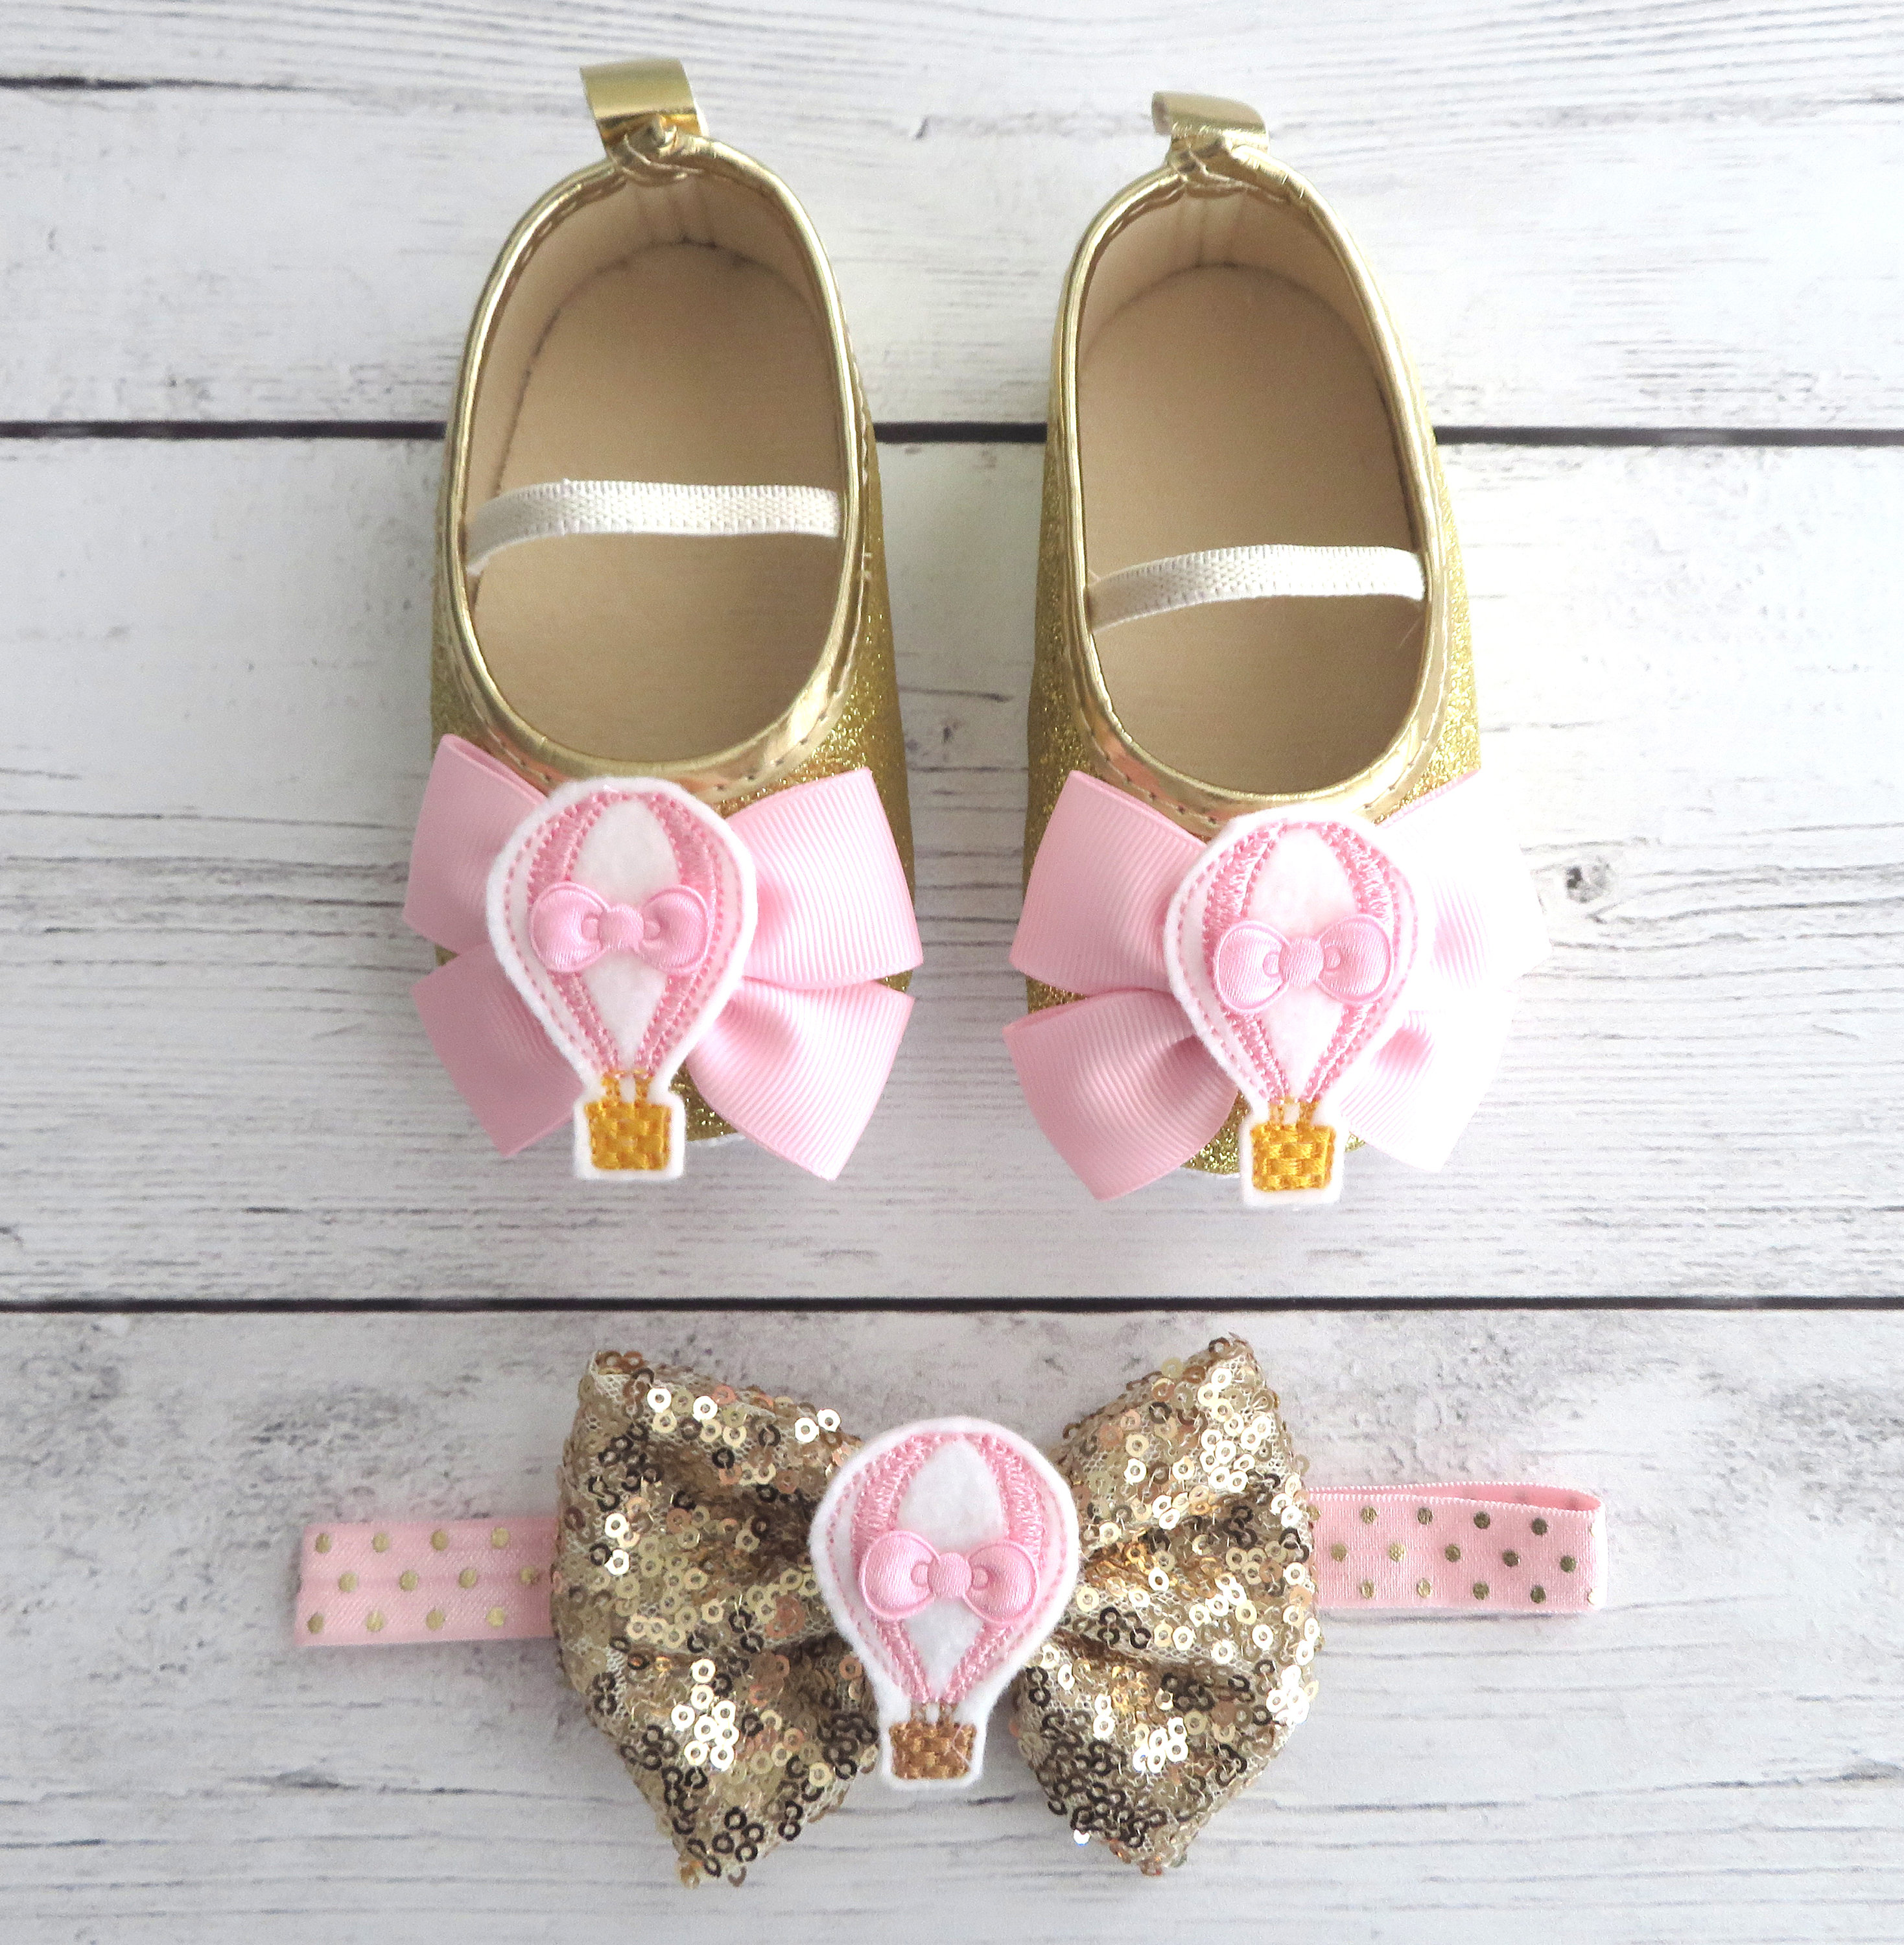 Hot Air Balloon First Birthday Shoes & Headband Set in light pink and gold - hot air balloon 1st birthday outfit, pink gold birthday girl